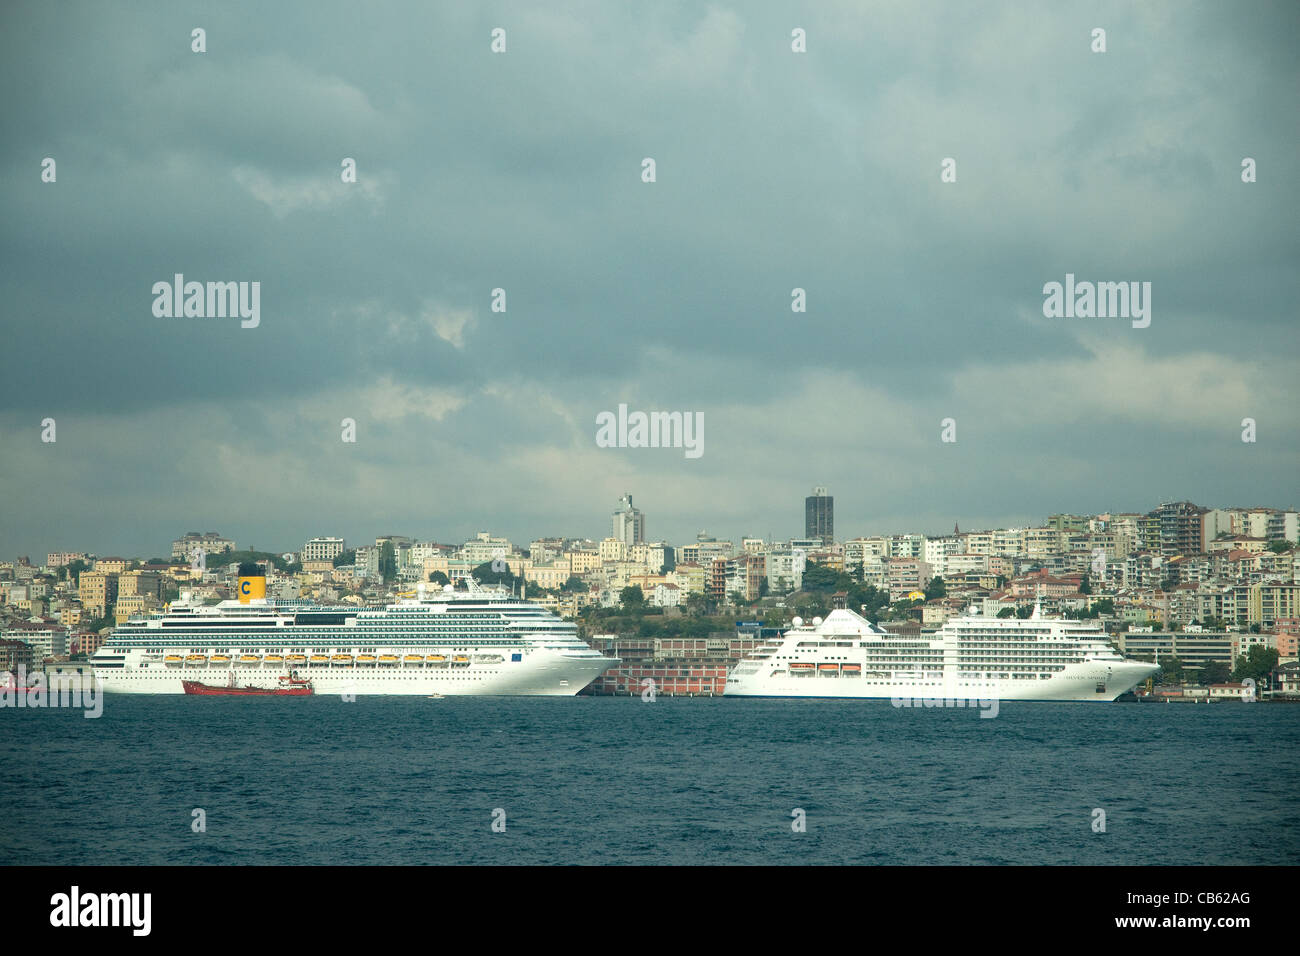 Cruise ships line Istanbul's waterfront, reflecting the ancient city's massive 21st-century tourism - Stock Image